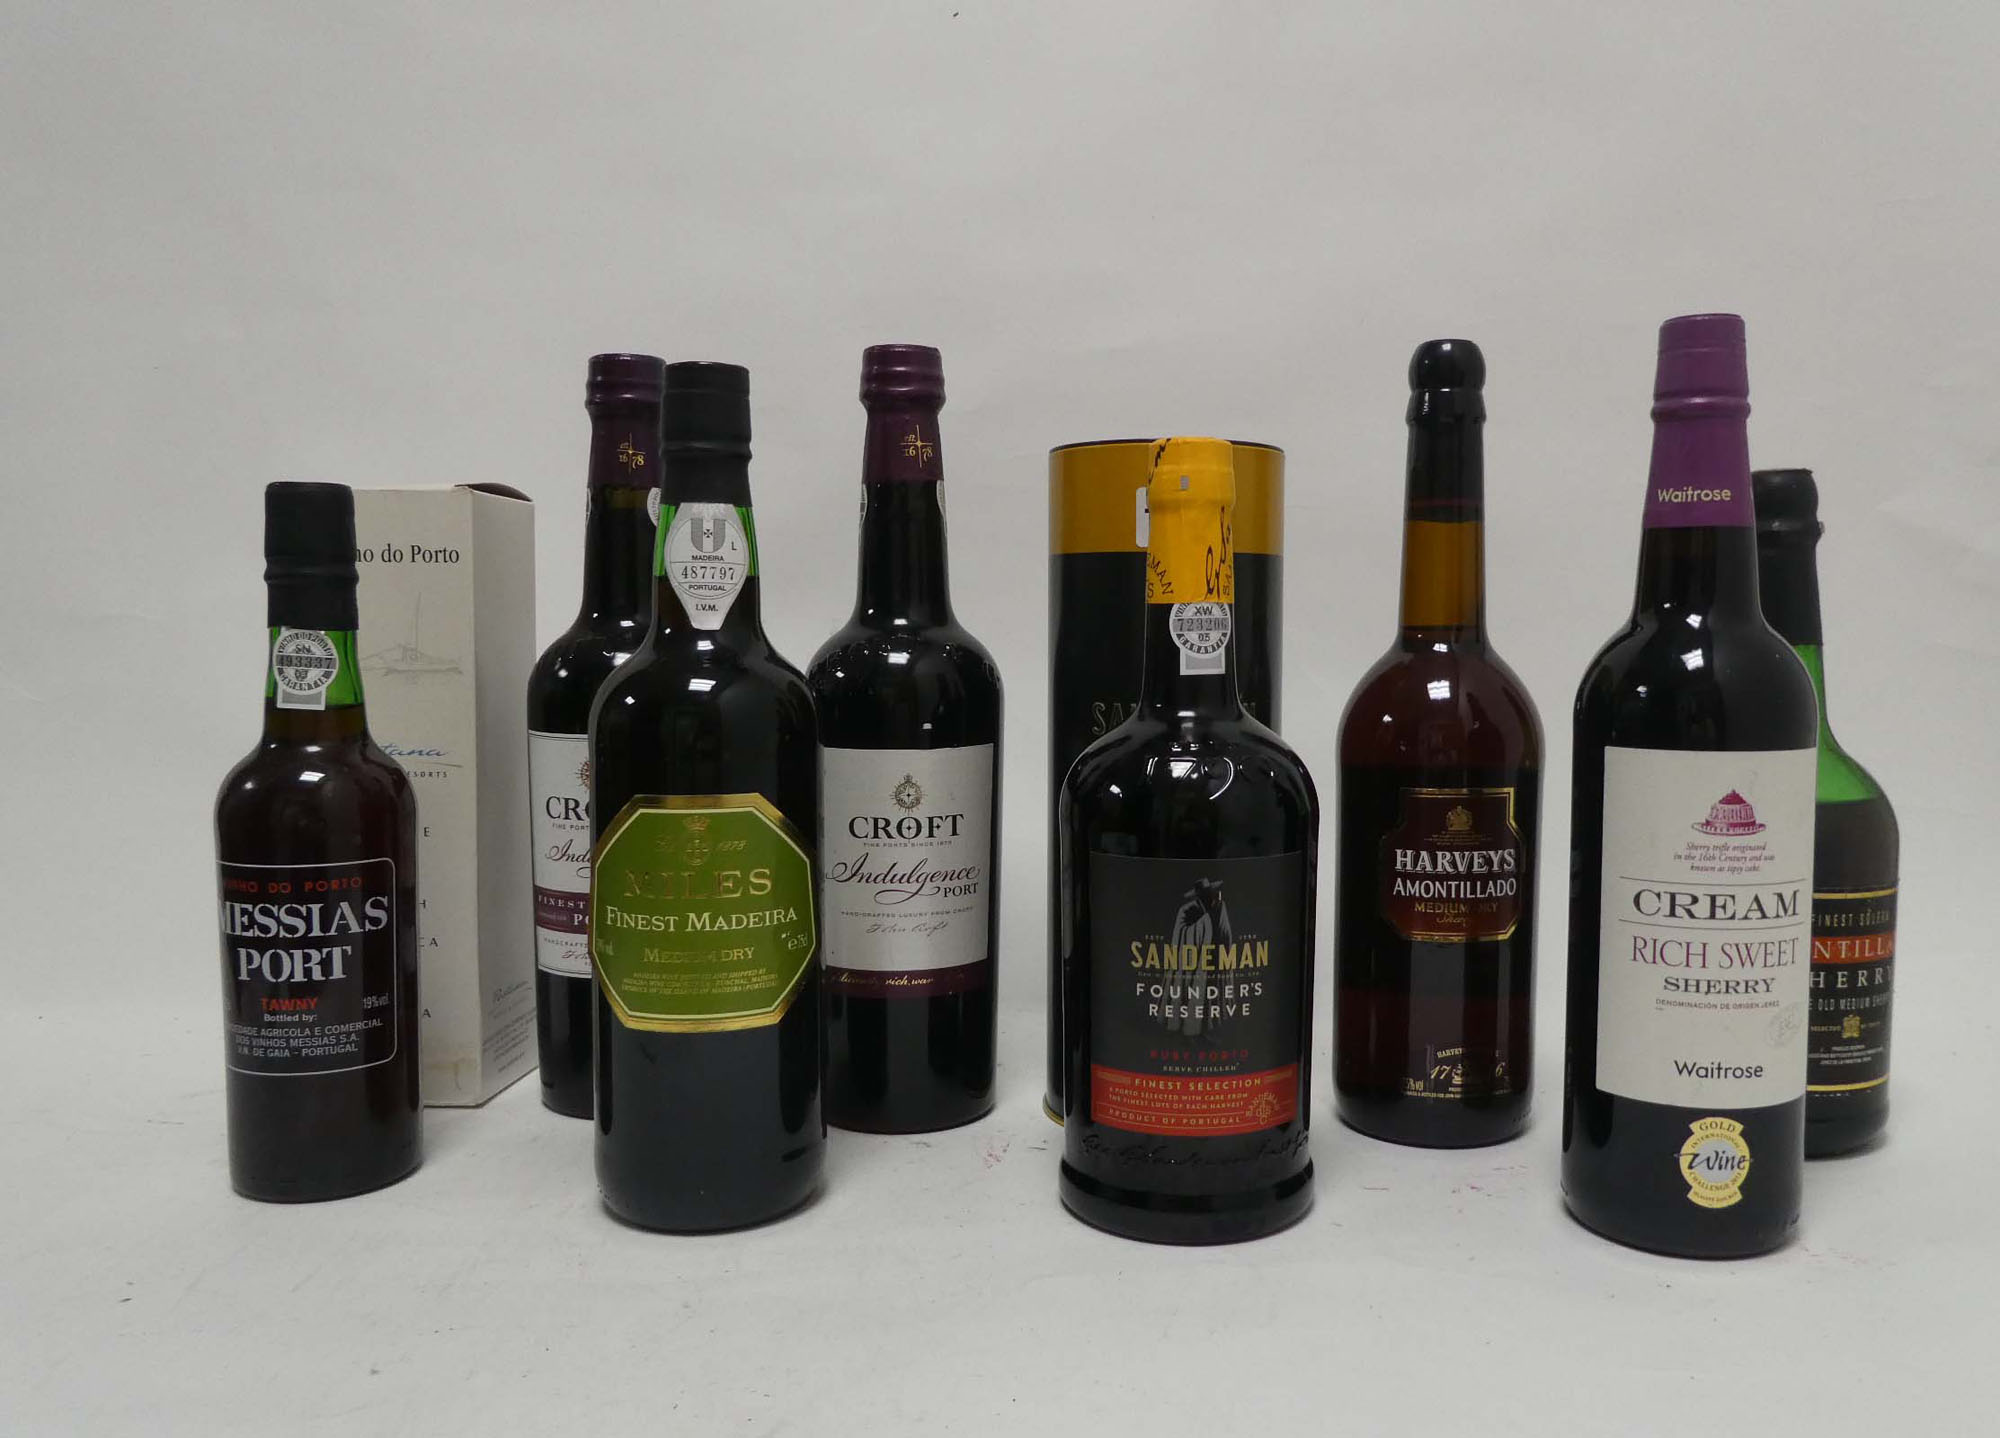 8 assorted bottles, 1x Sandeman Founders Reserve Ruby Port with carton, 1x Croft Indulgence